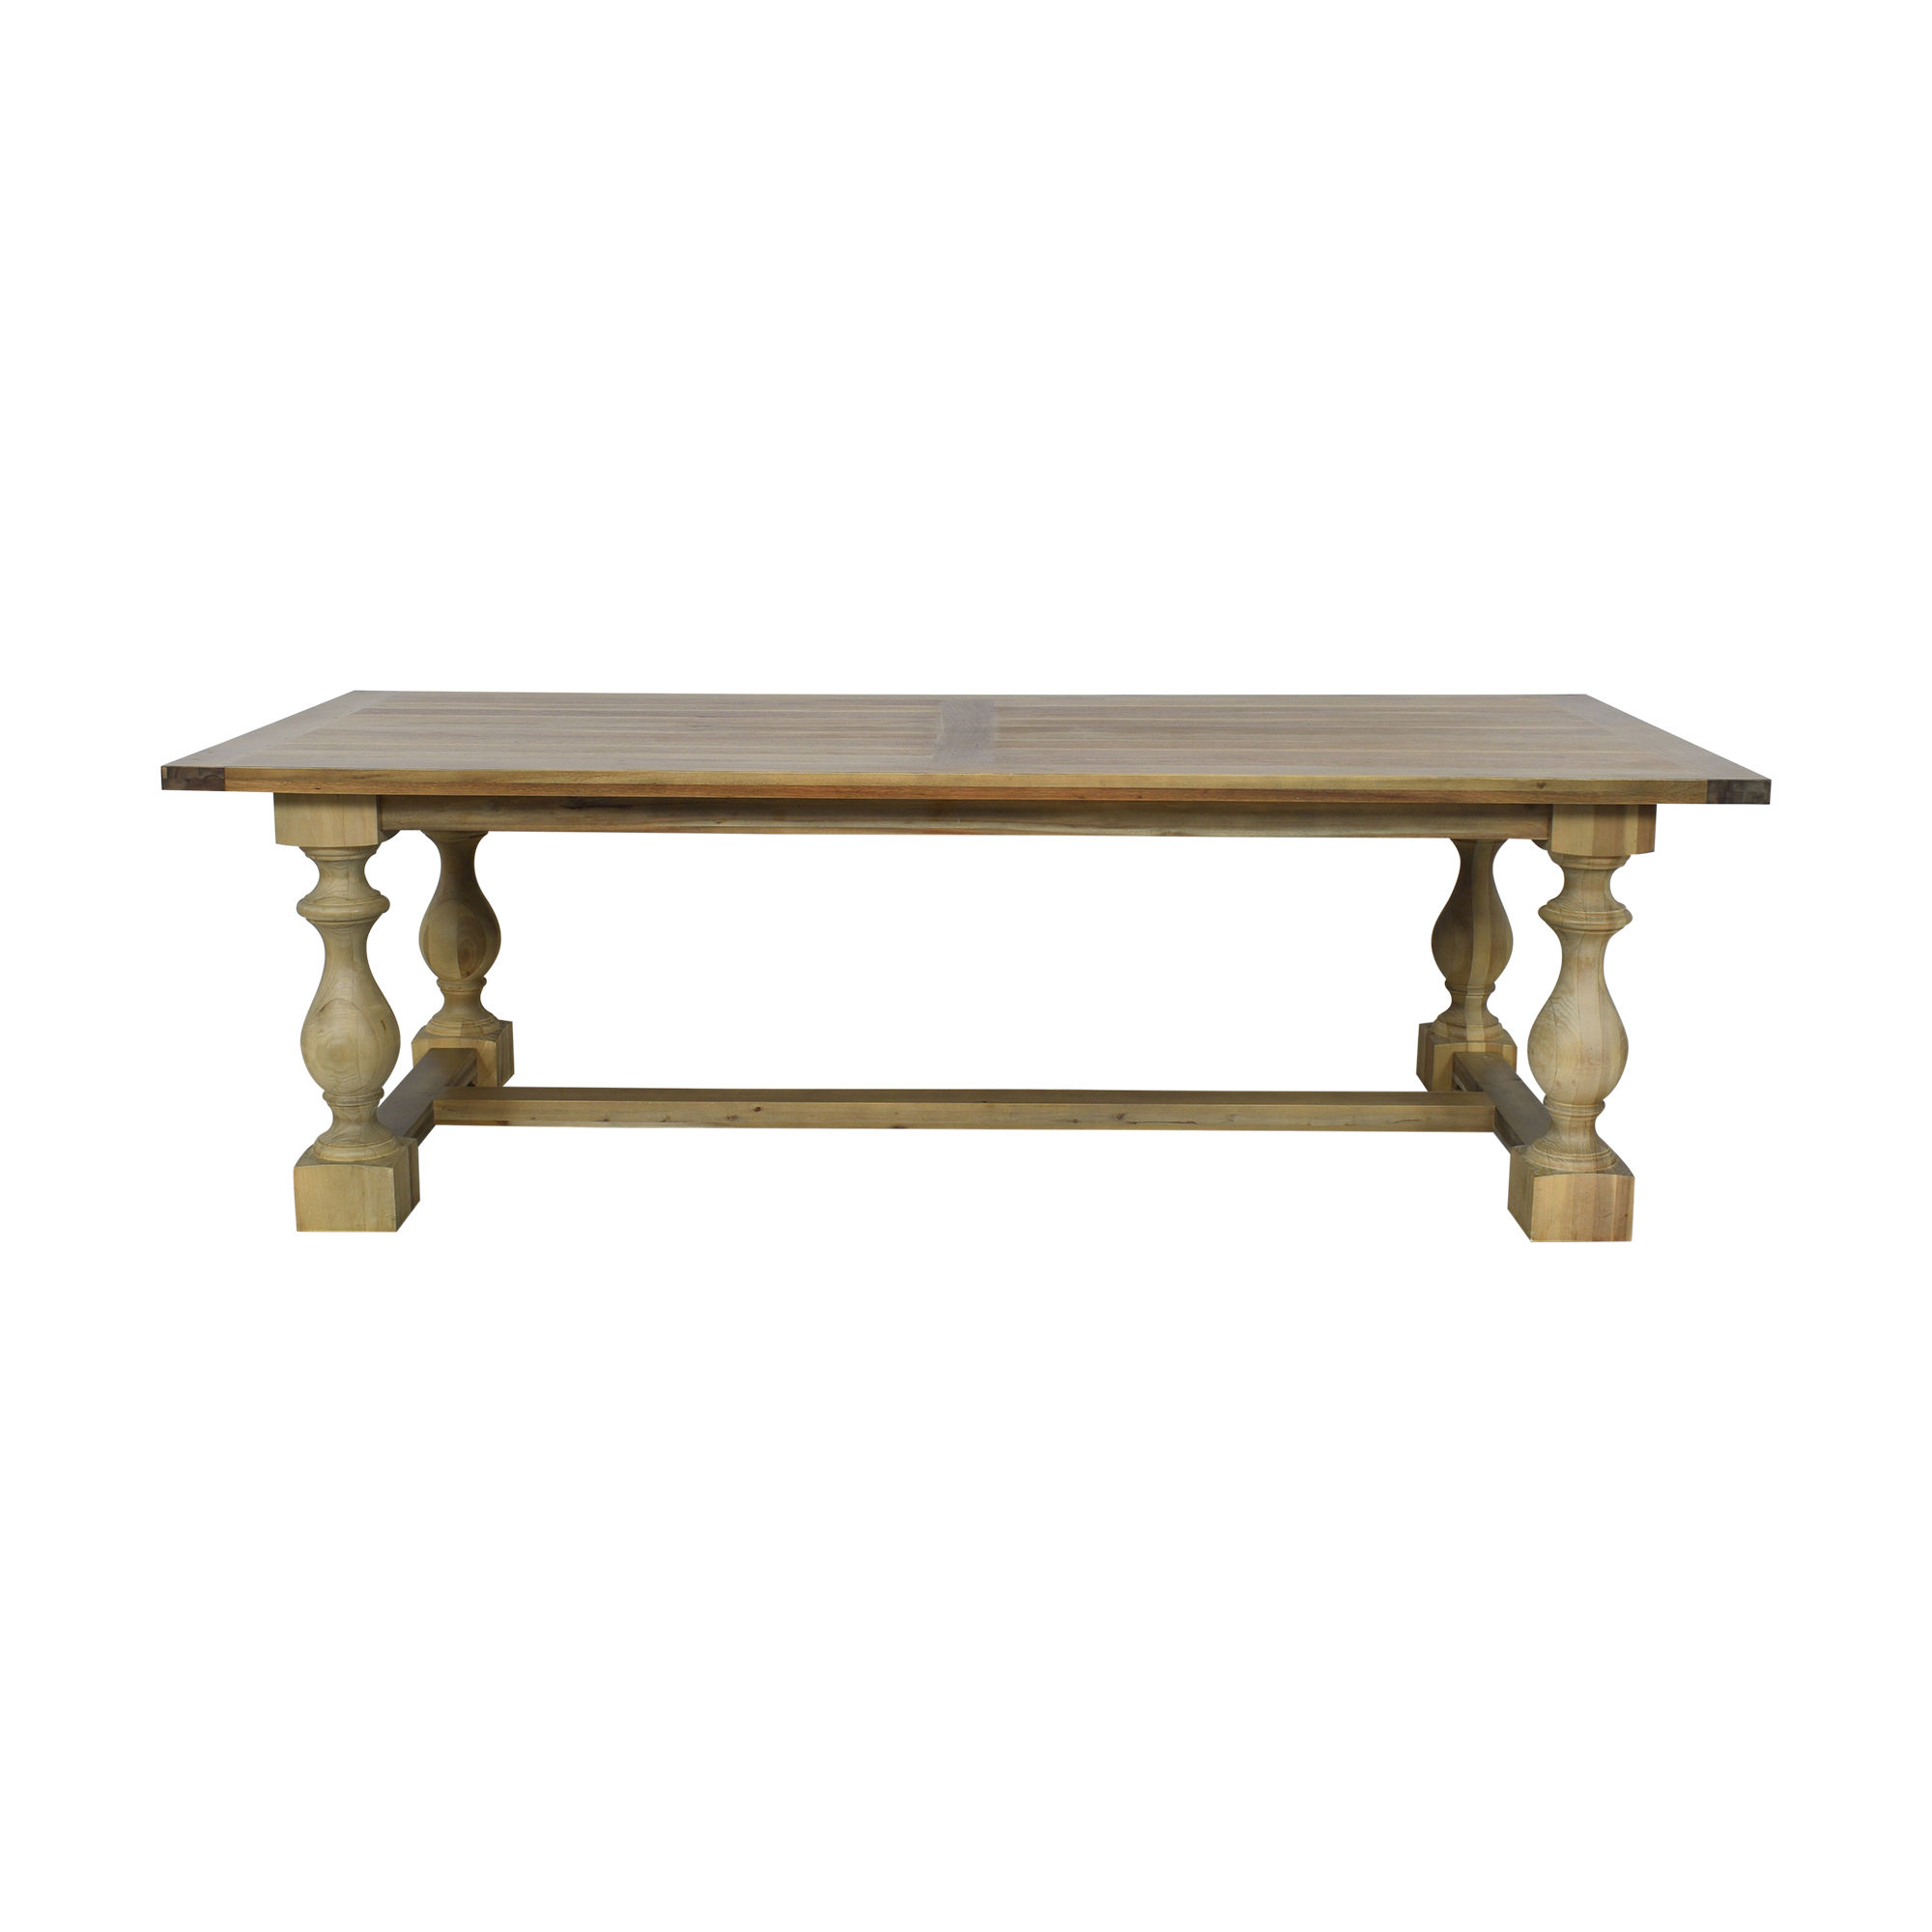 Restoration Hardware 17TH C. Monastery Rectangular Dining Table / Dinner Tables